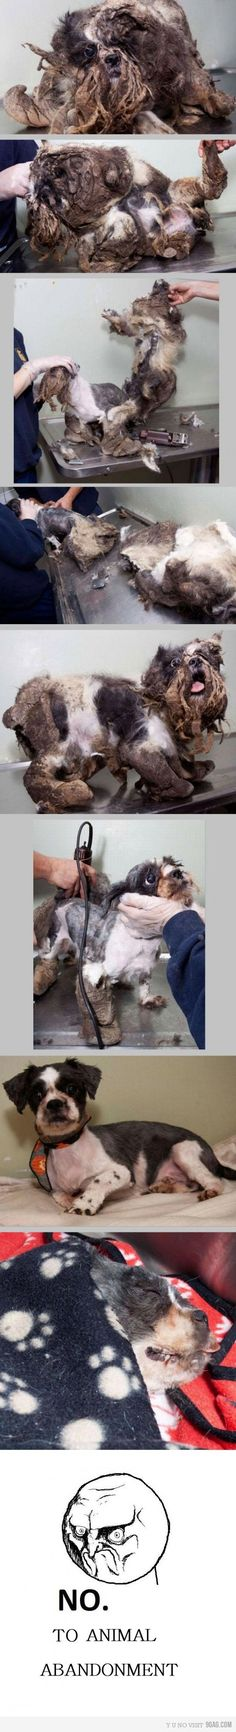 Dog groomers and animal care staff perform miracles..